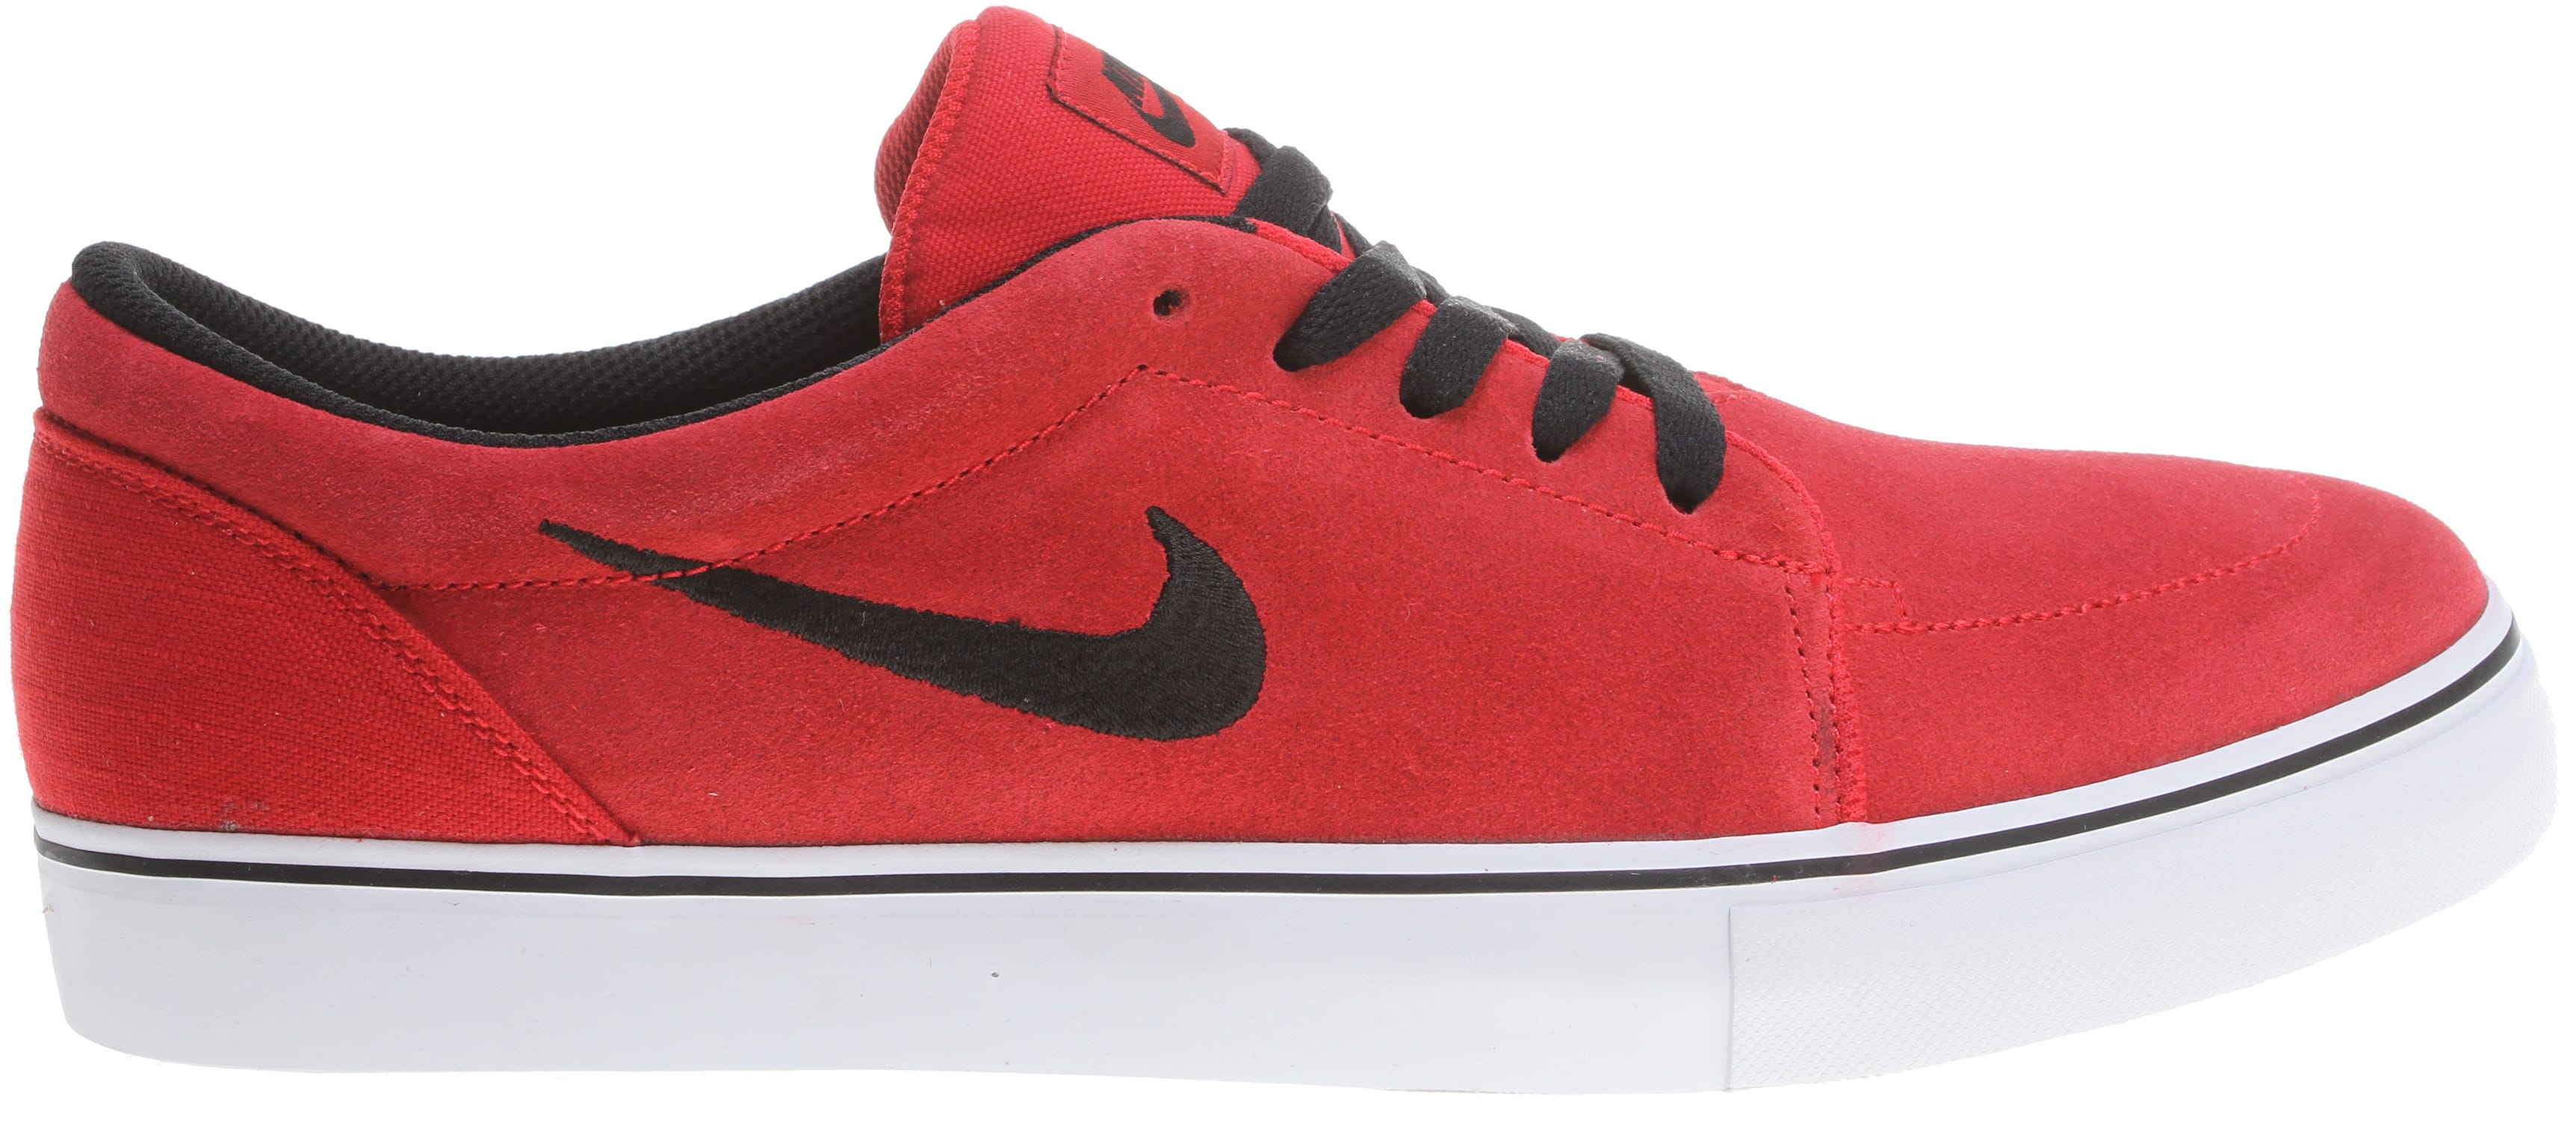 Discount Nike Skate Shoes